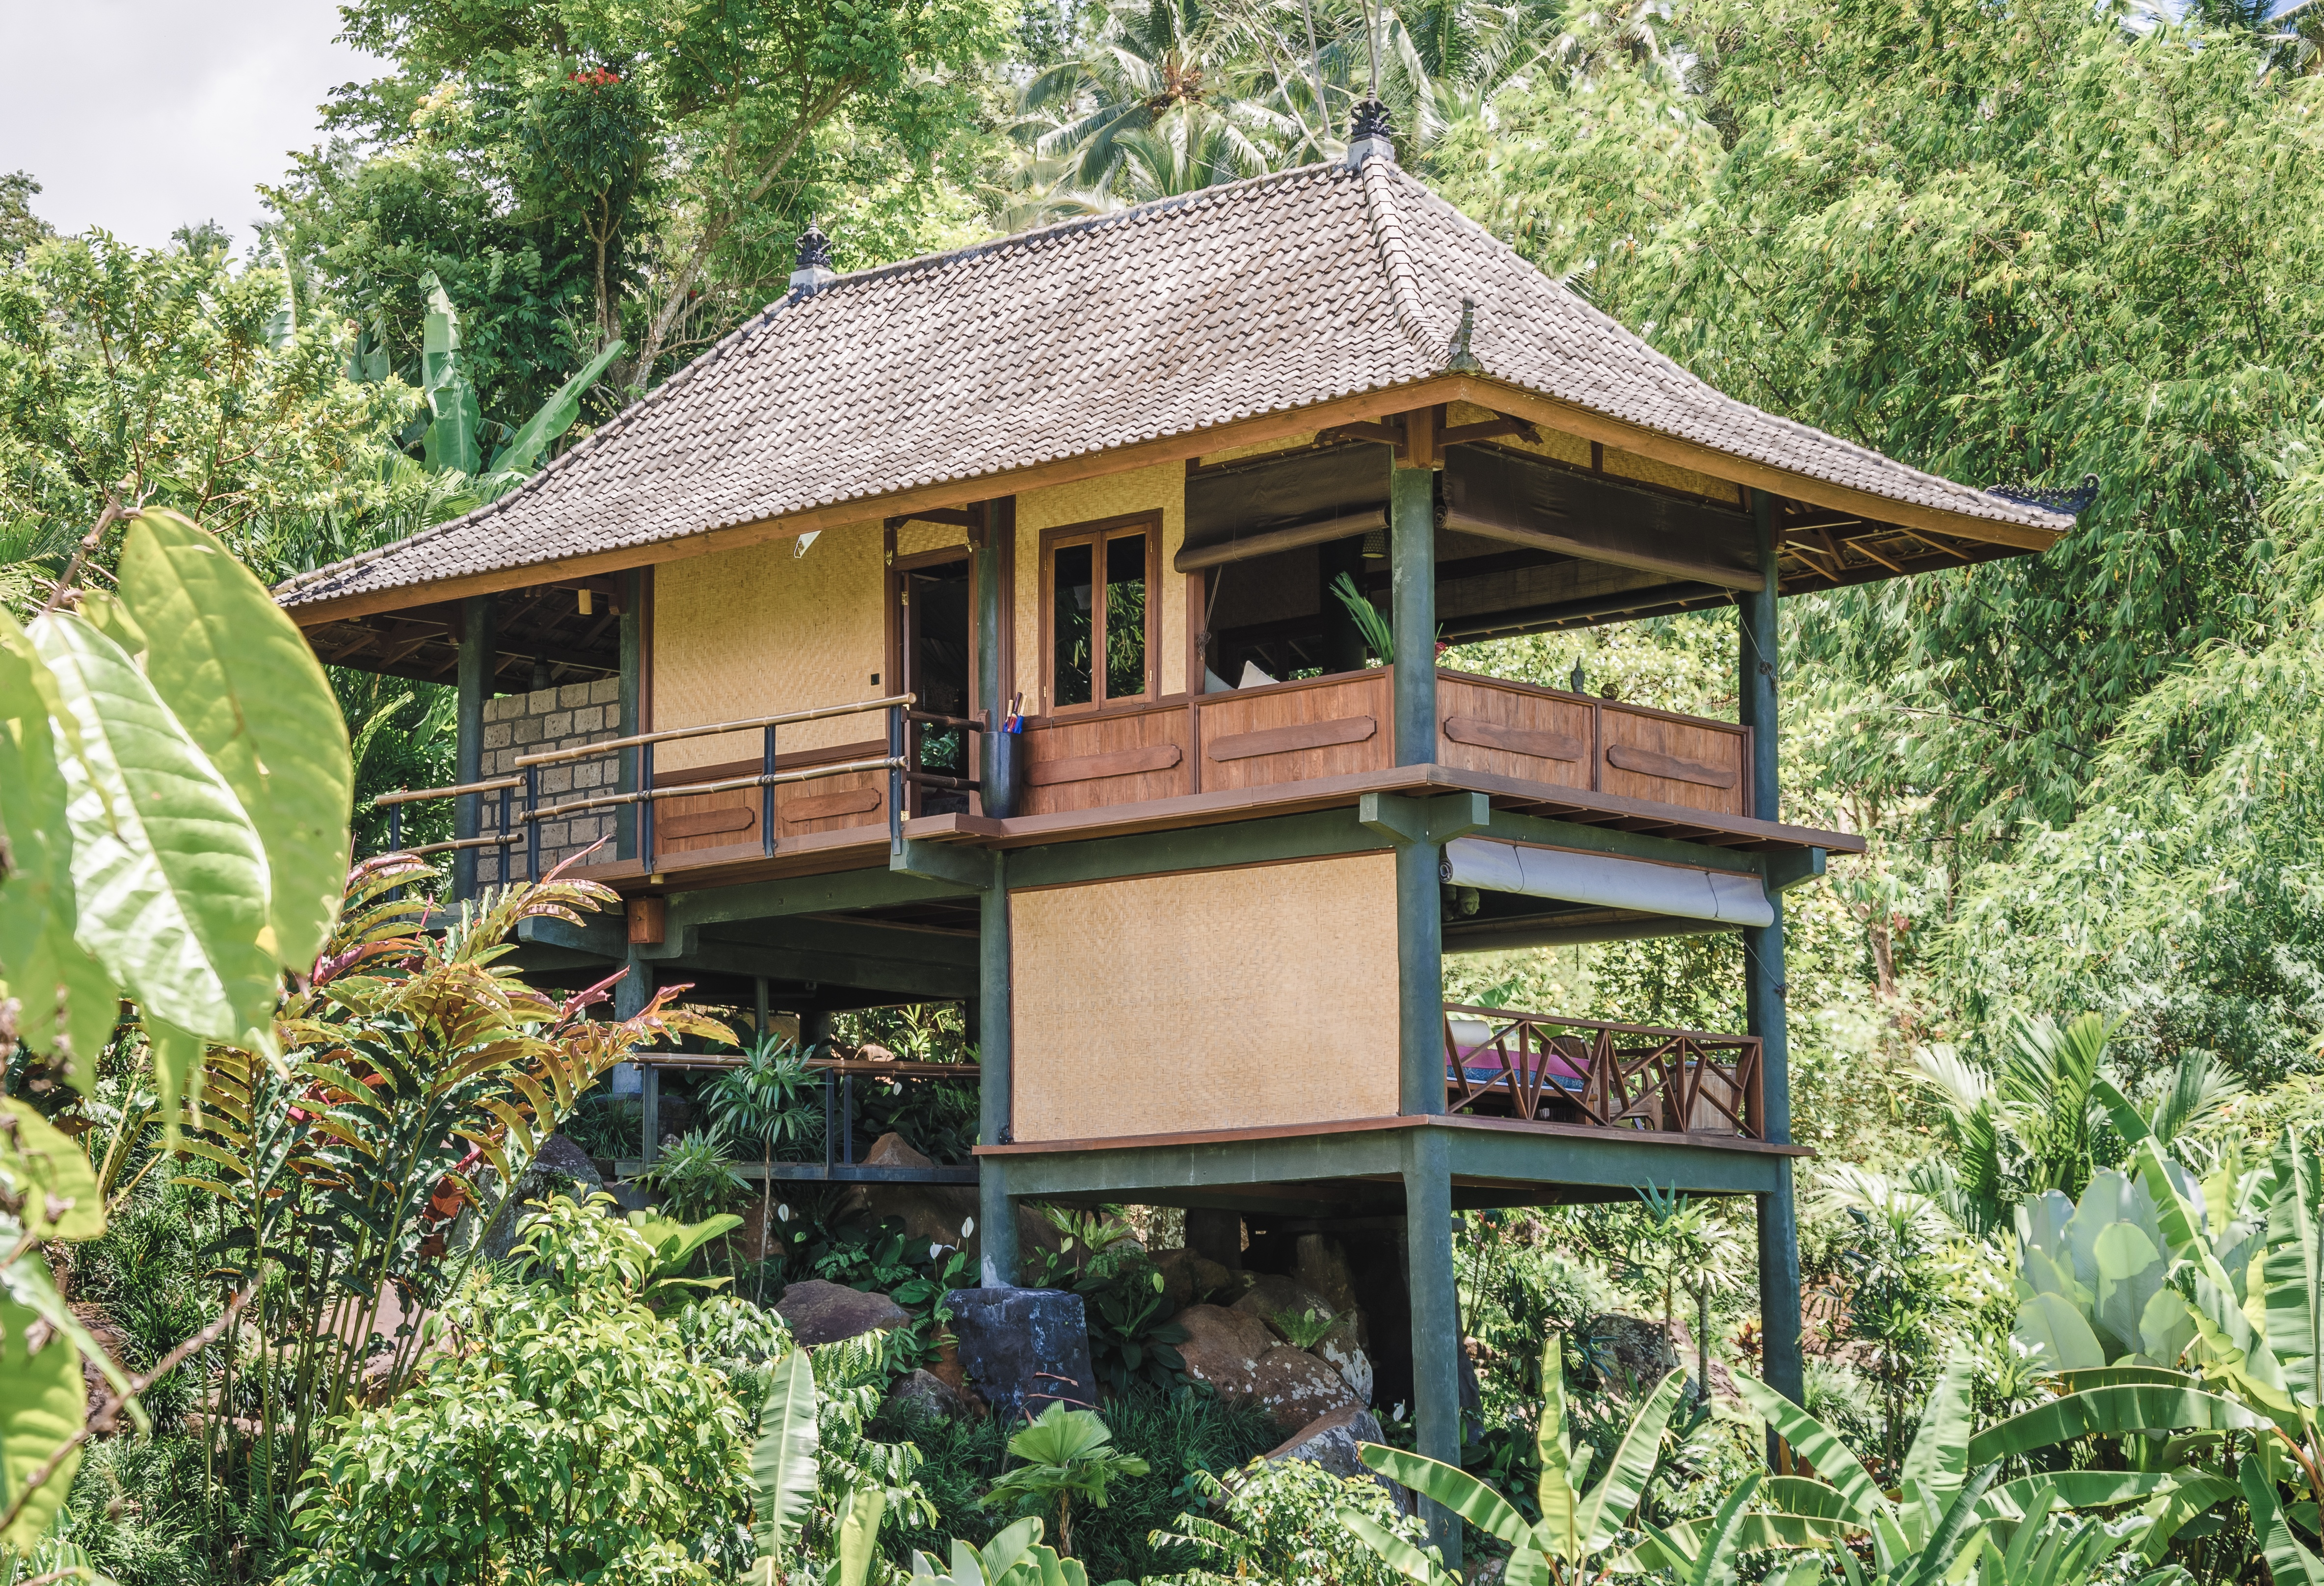 The Waterfall Bungalow at Bali Eco Stay